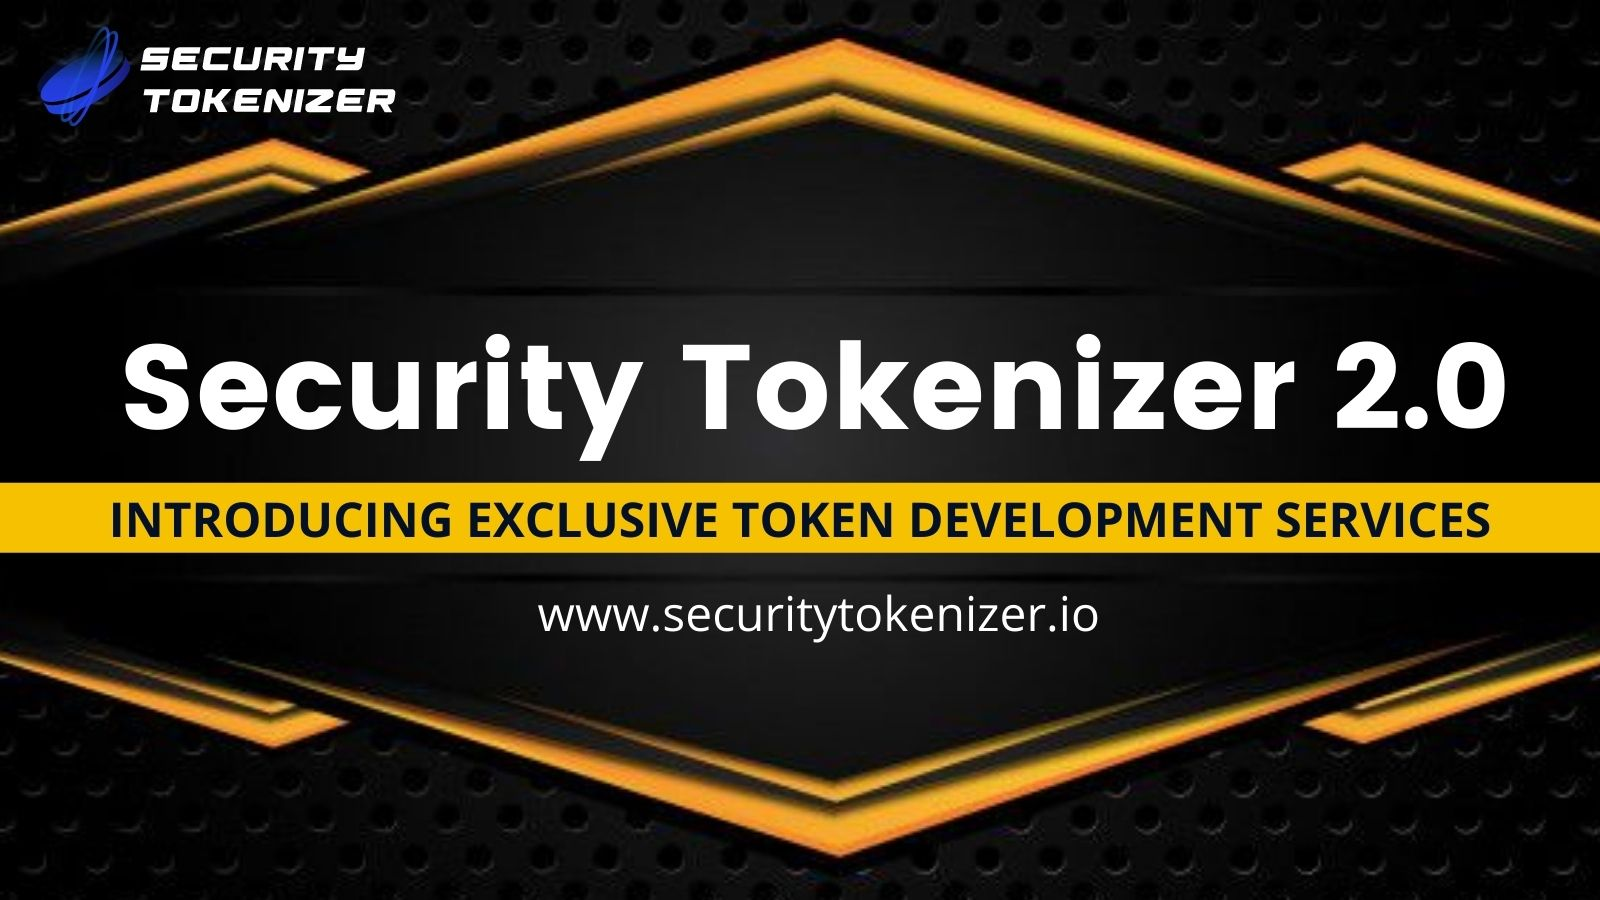 Security Tokenizer Entering Into The Crypto Market With New Token Development Solutions